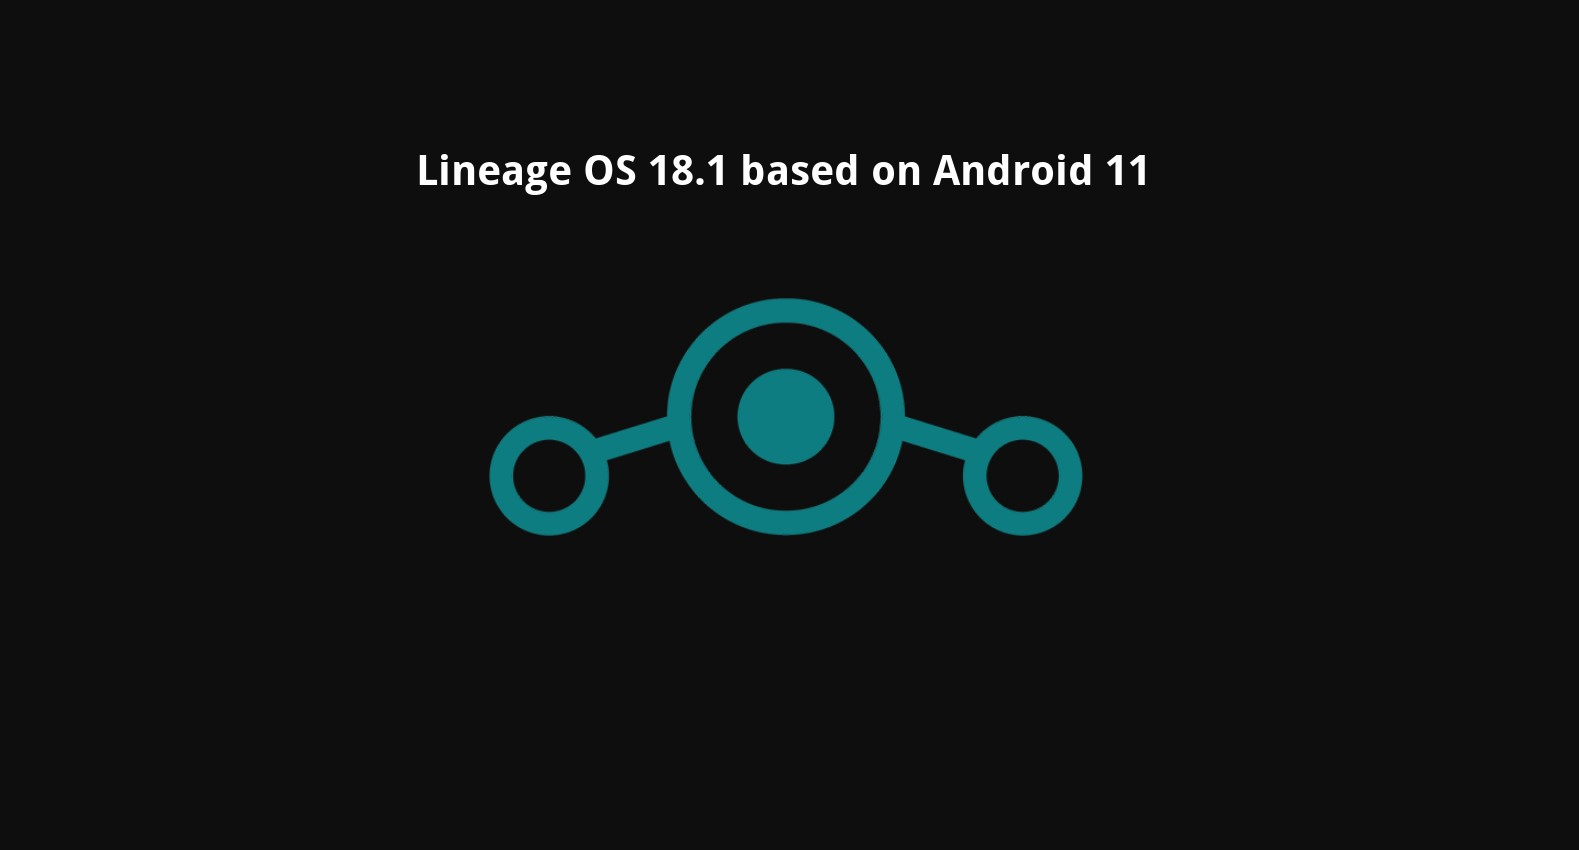 Download Lineage OS 18.1 based on Android 11